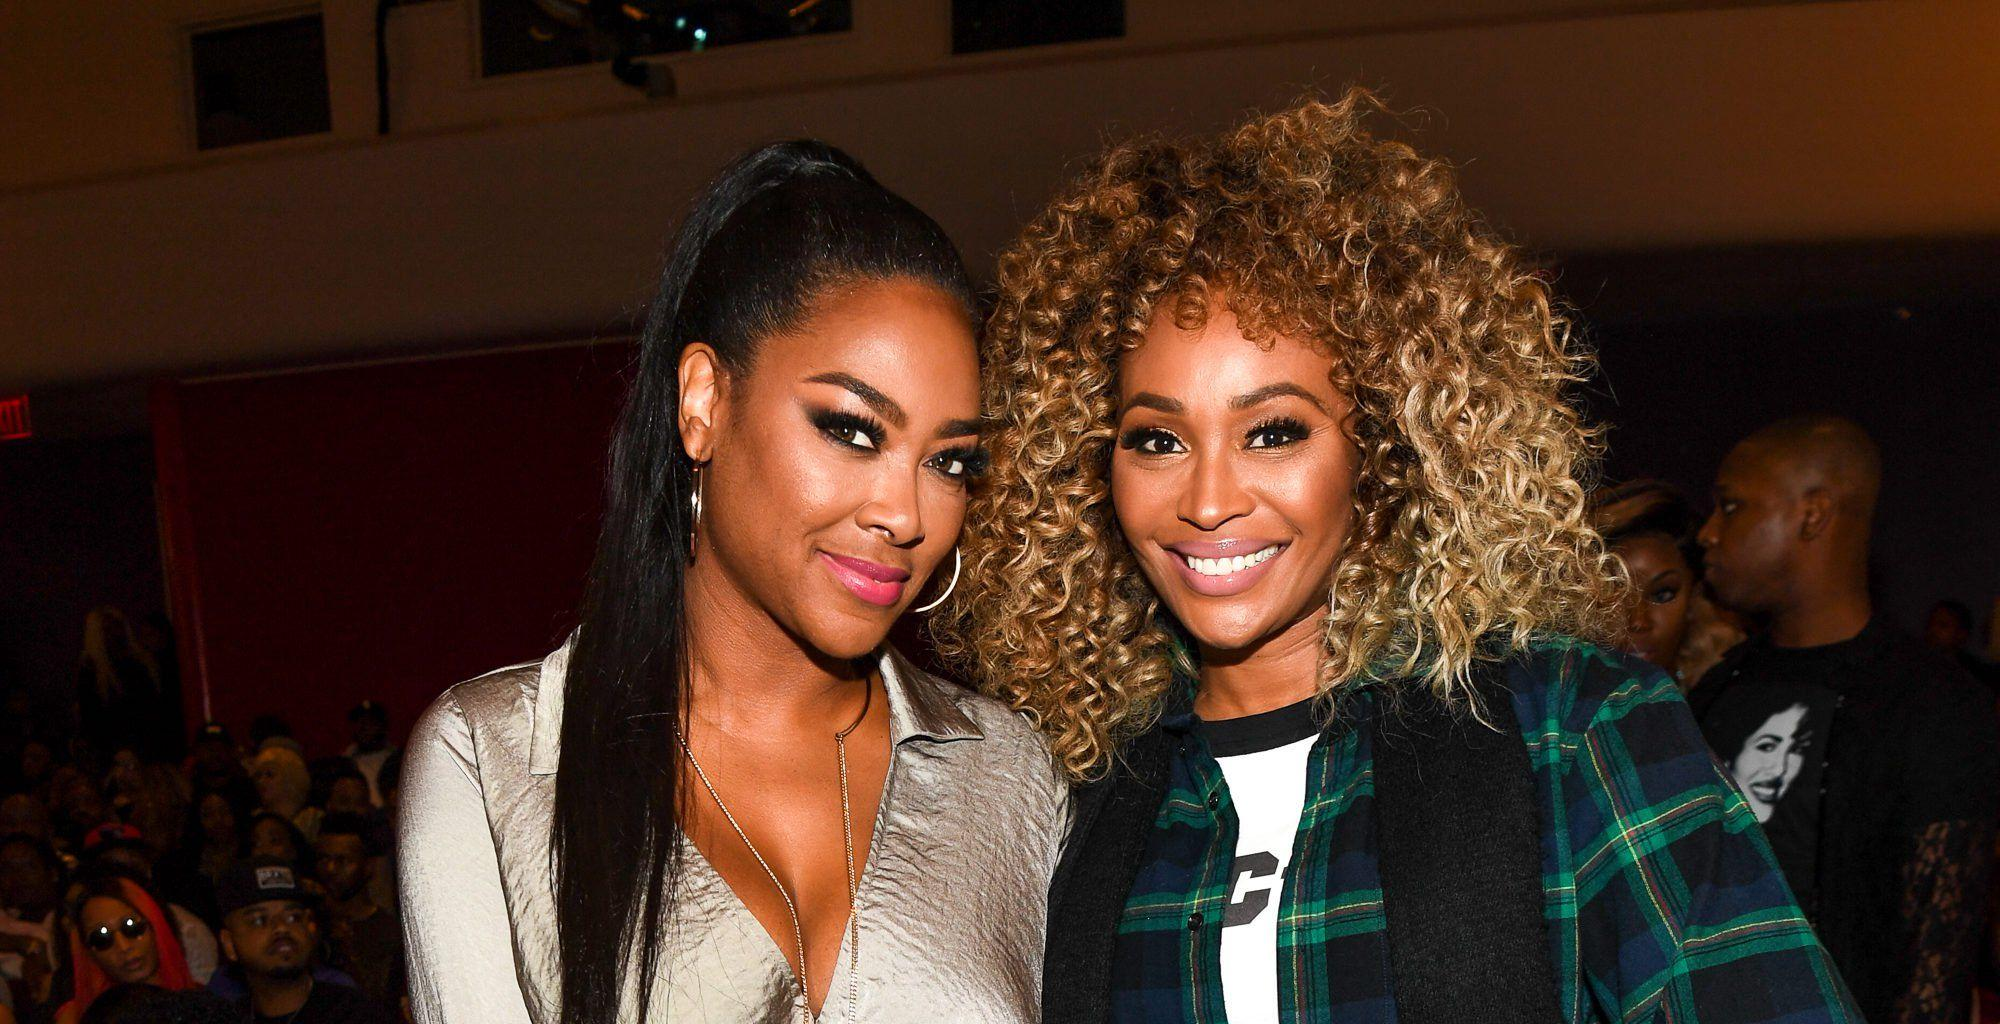 Kenya Moore And Cynthia Bailey Are 'Chocolate Sisters' In This Latest Photo